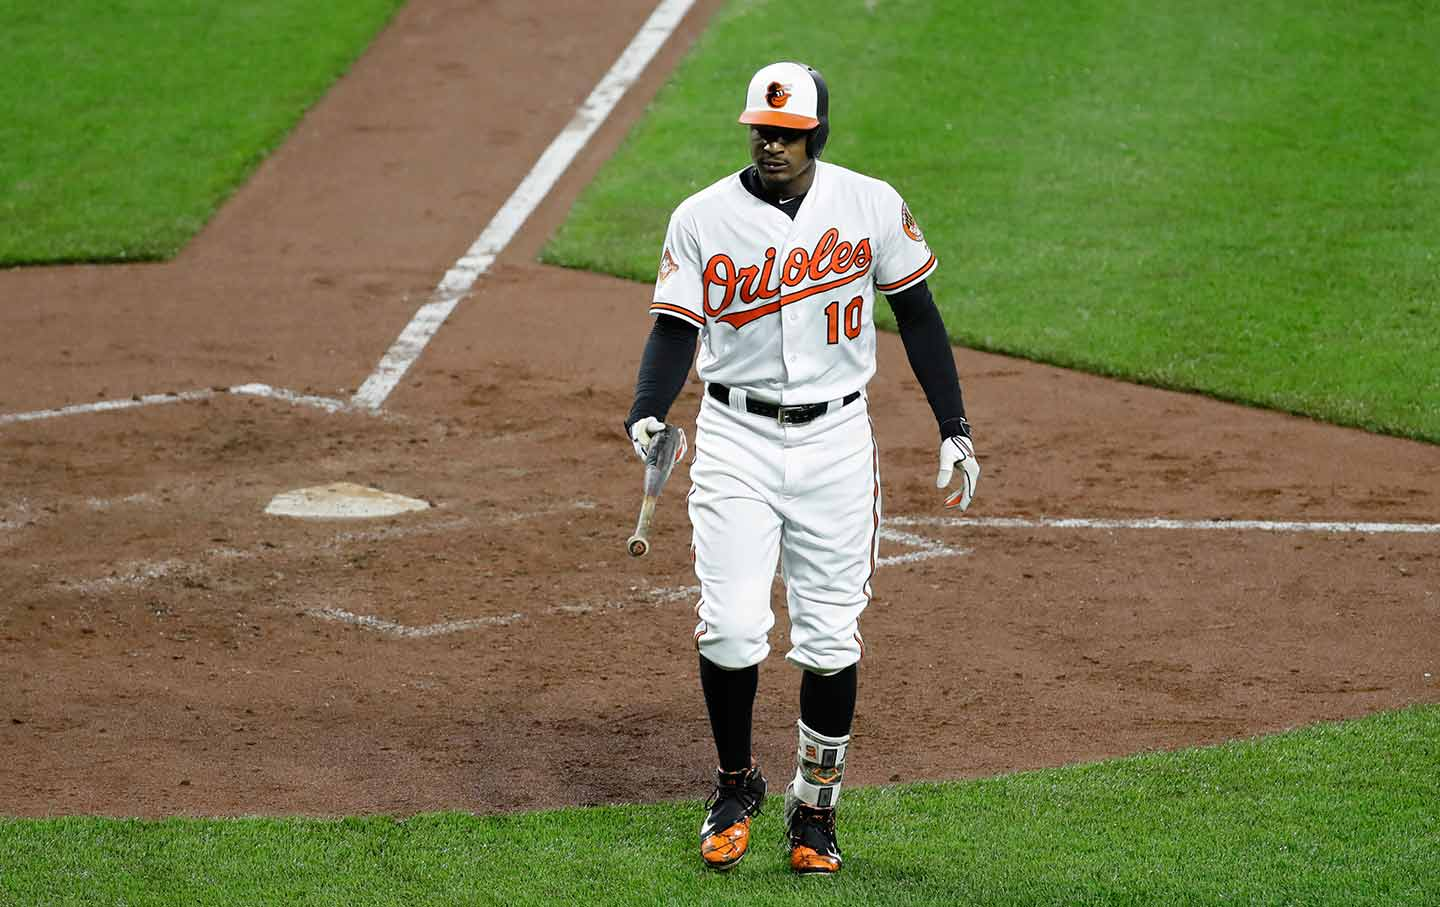 https://www.thenation.com/wp-content/uploads/2017/05/adamjones-baltimore-ap-img.jpg?scale=896&compress=80